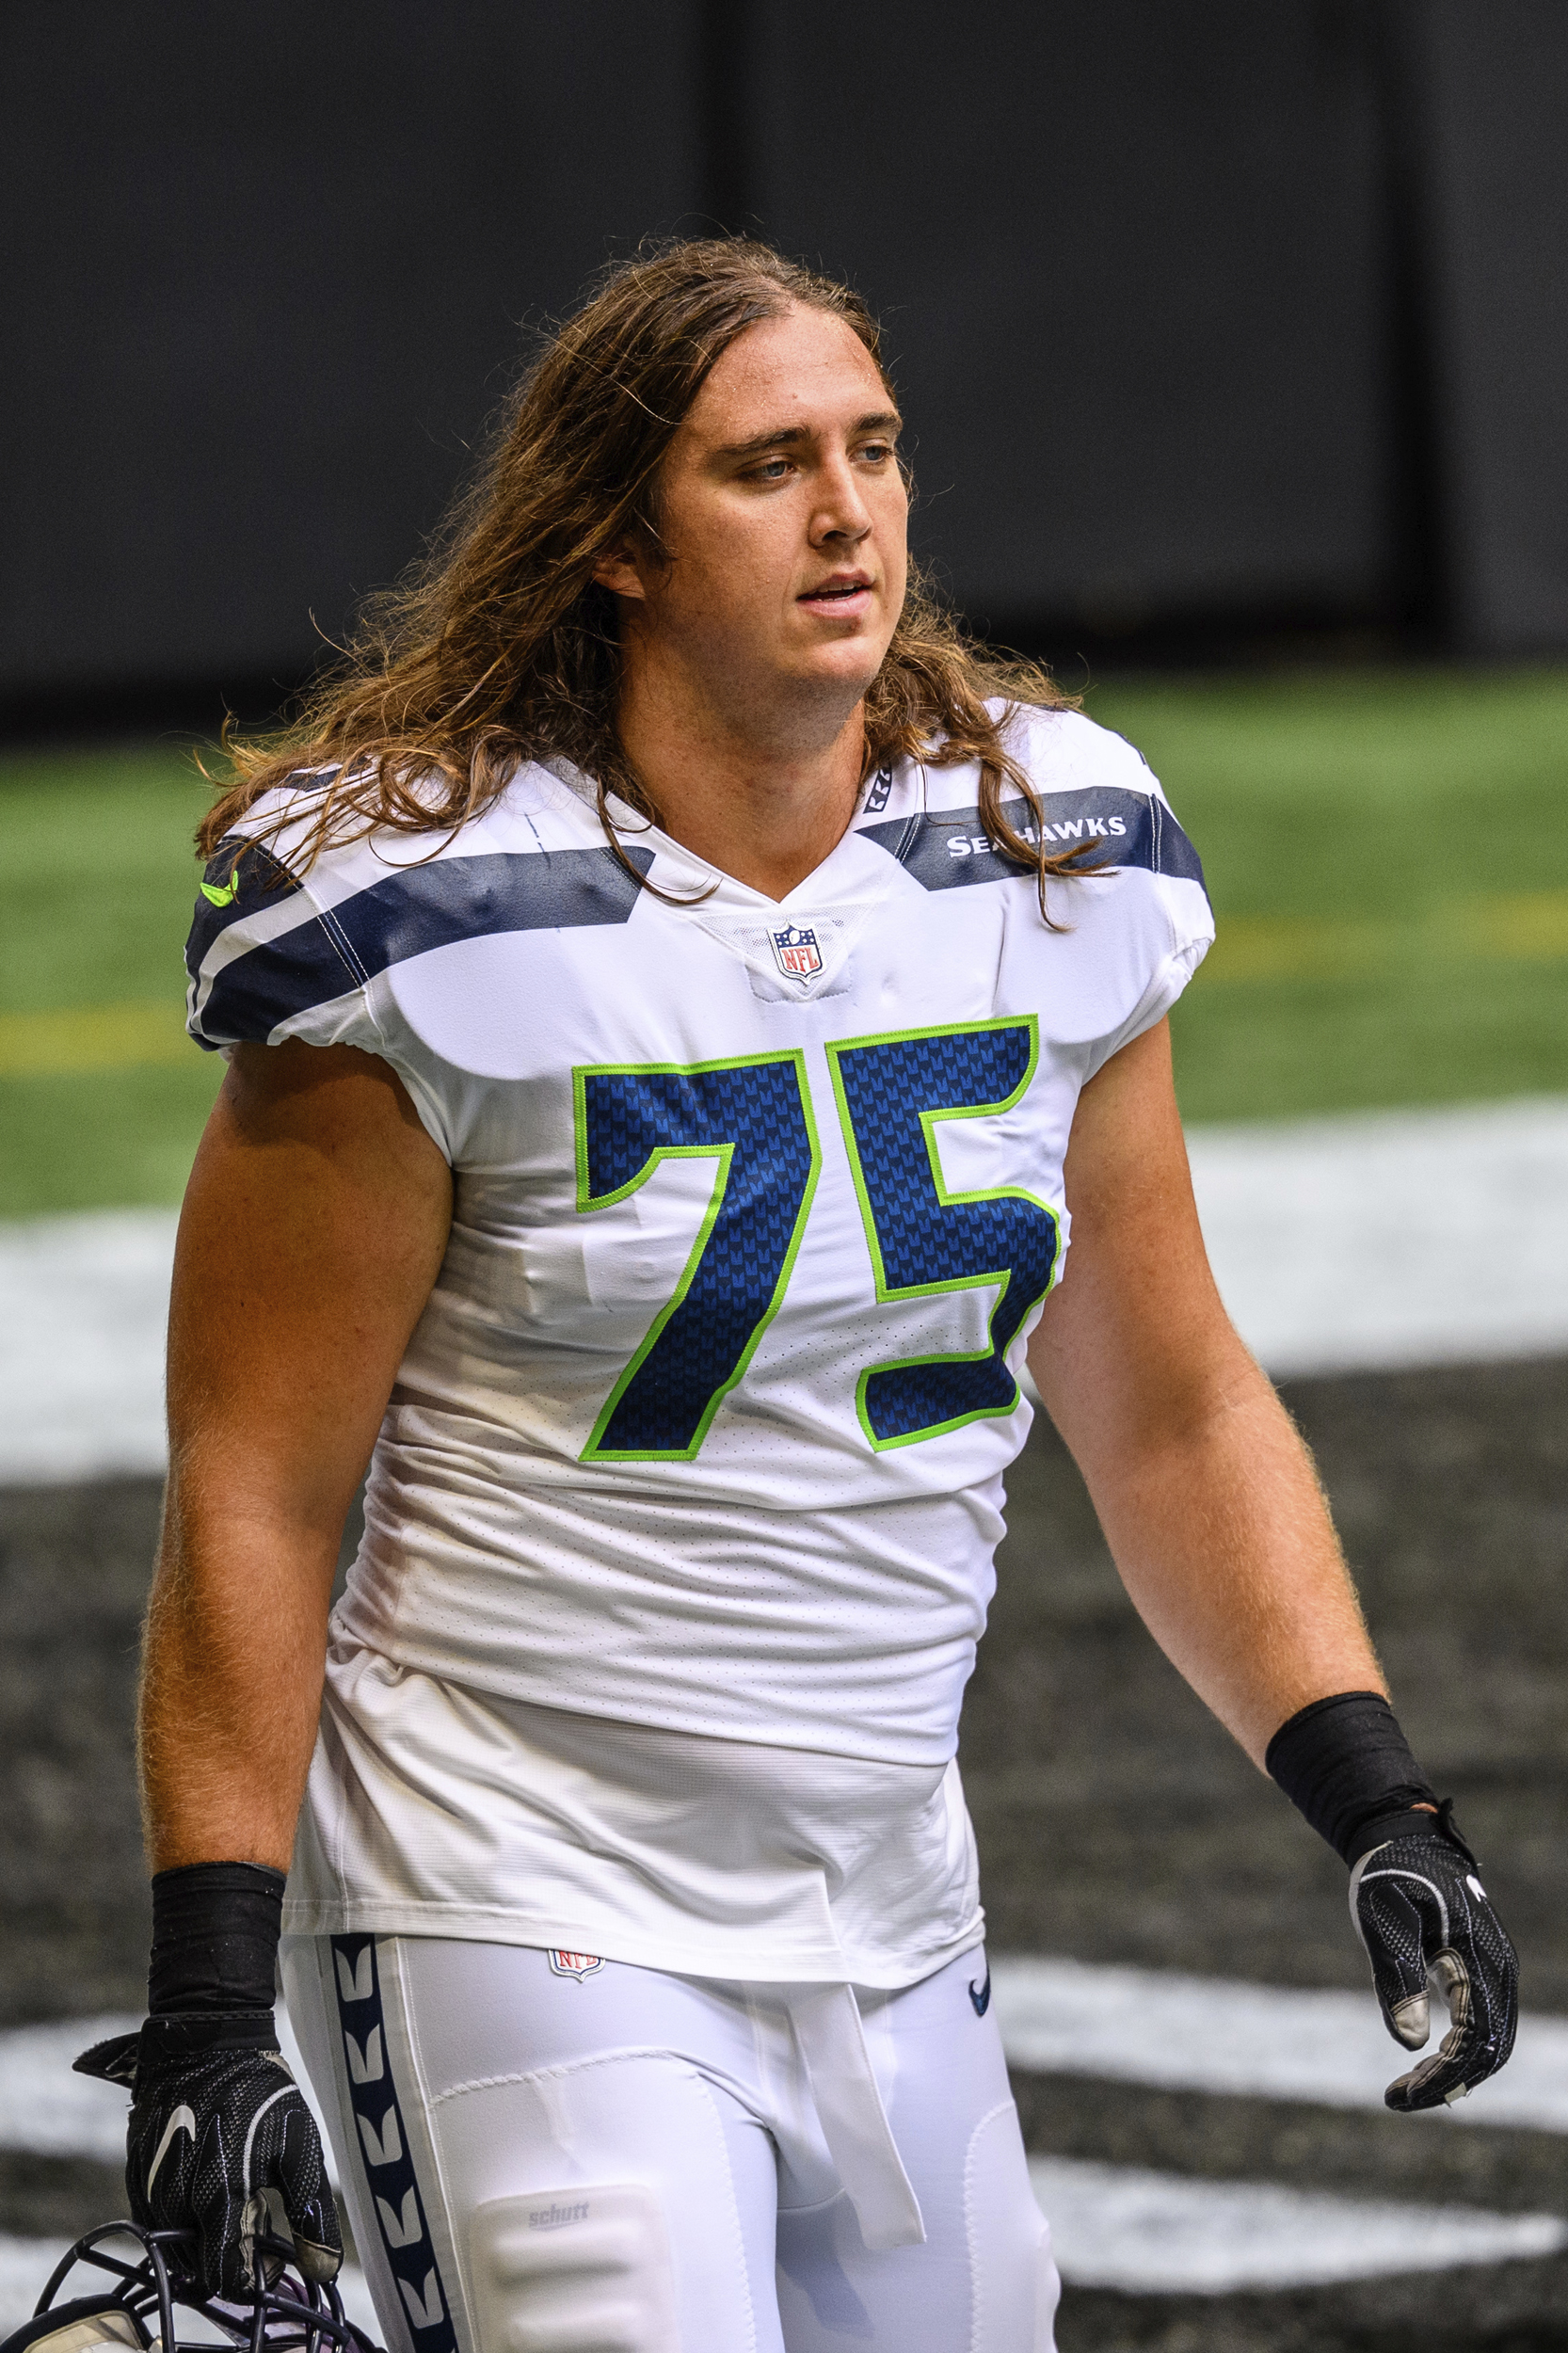 Seattle Seahawks lineman Chad Wheeler arrested on suspicion of domestic violence